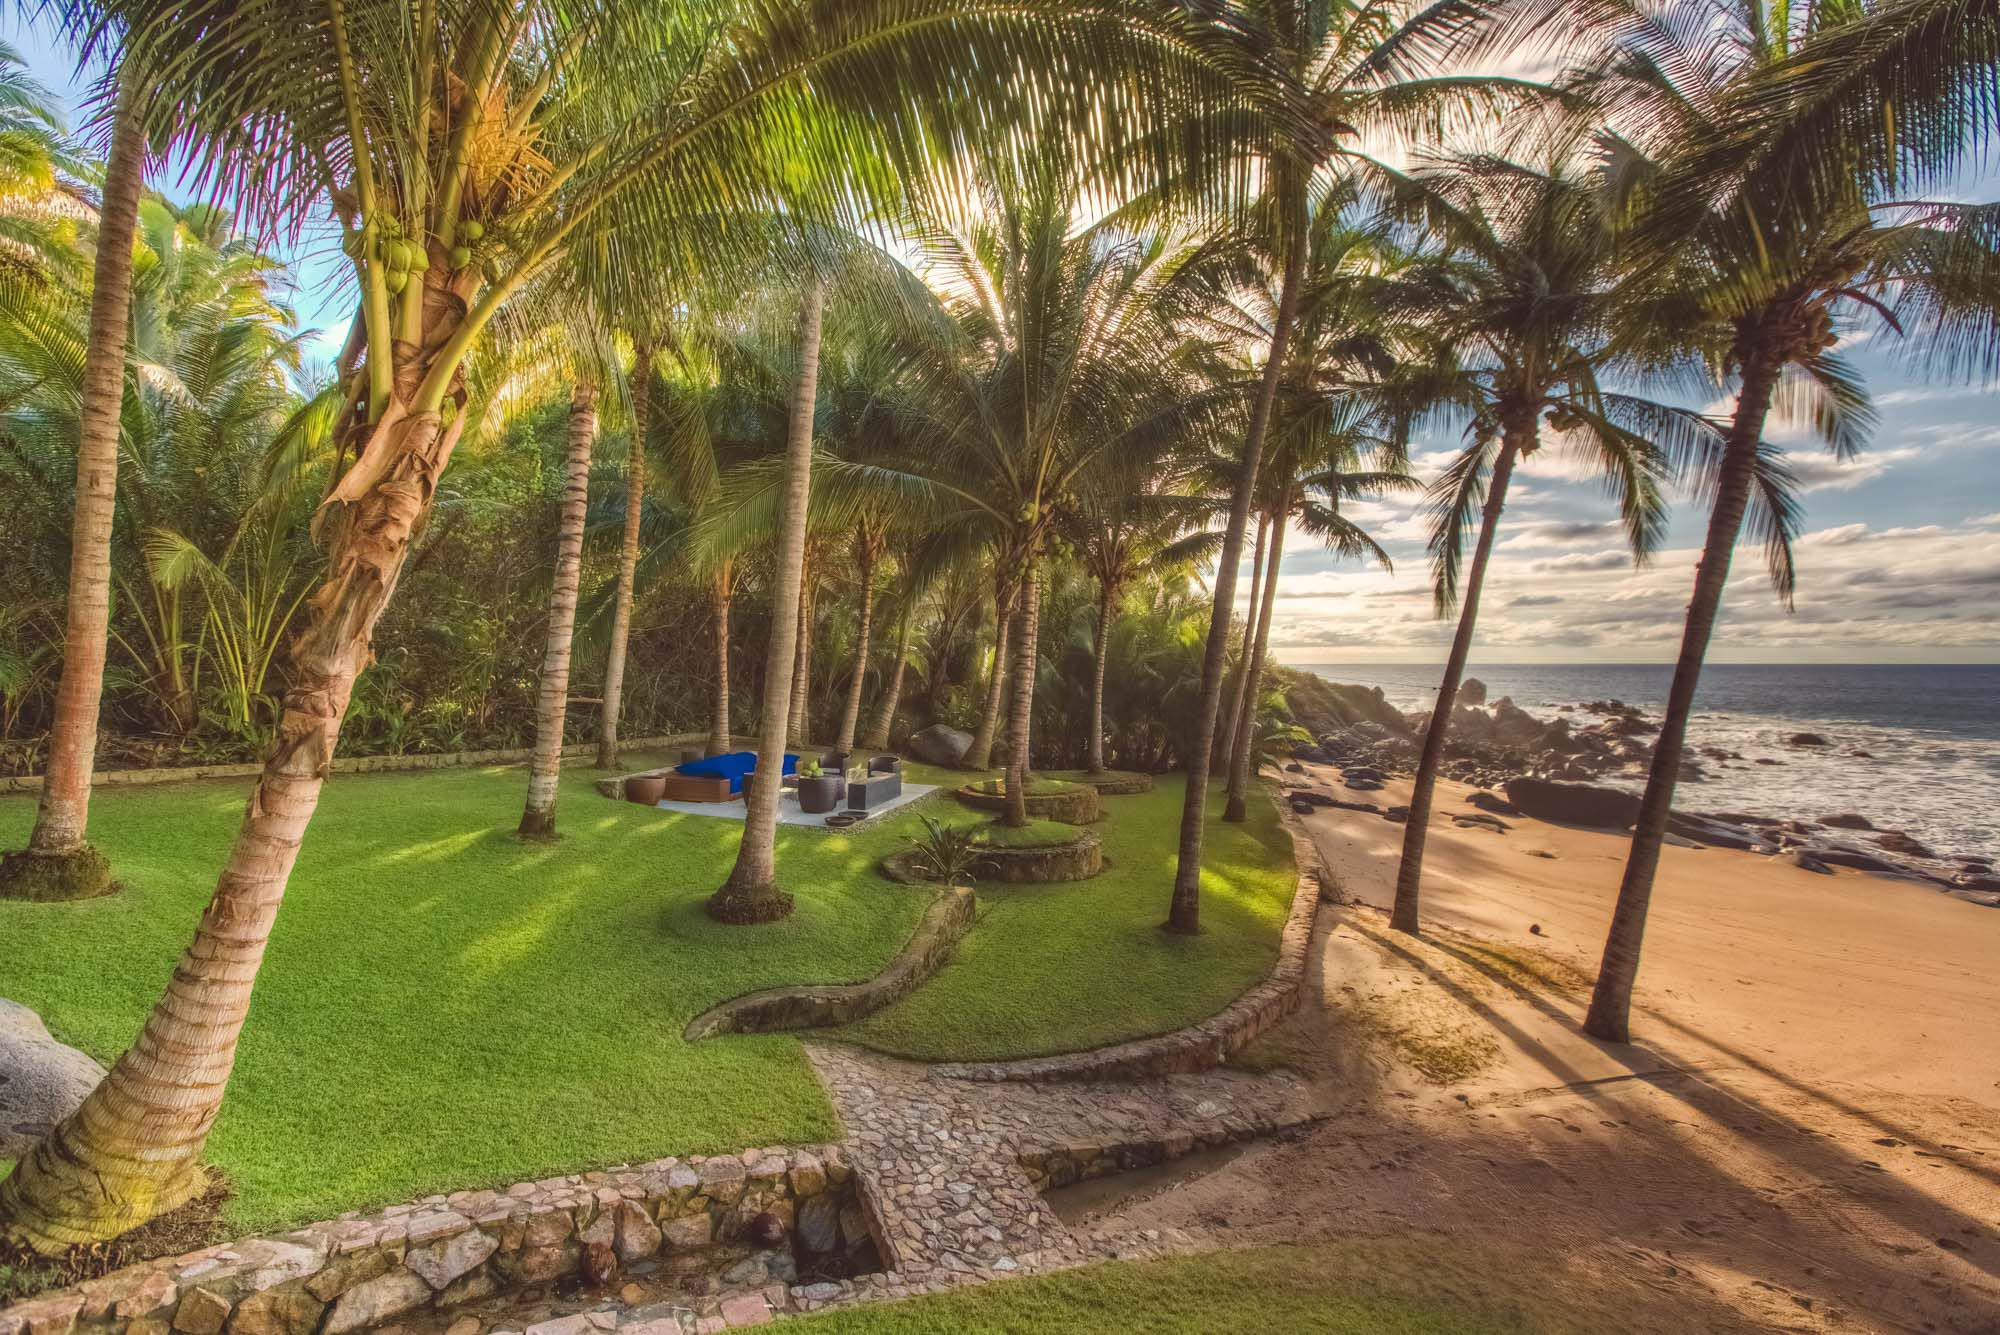 Garden-Weddings-Sayulita